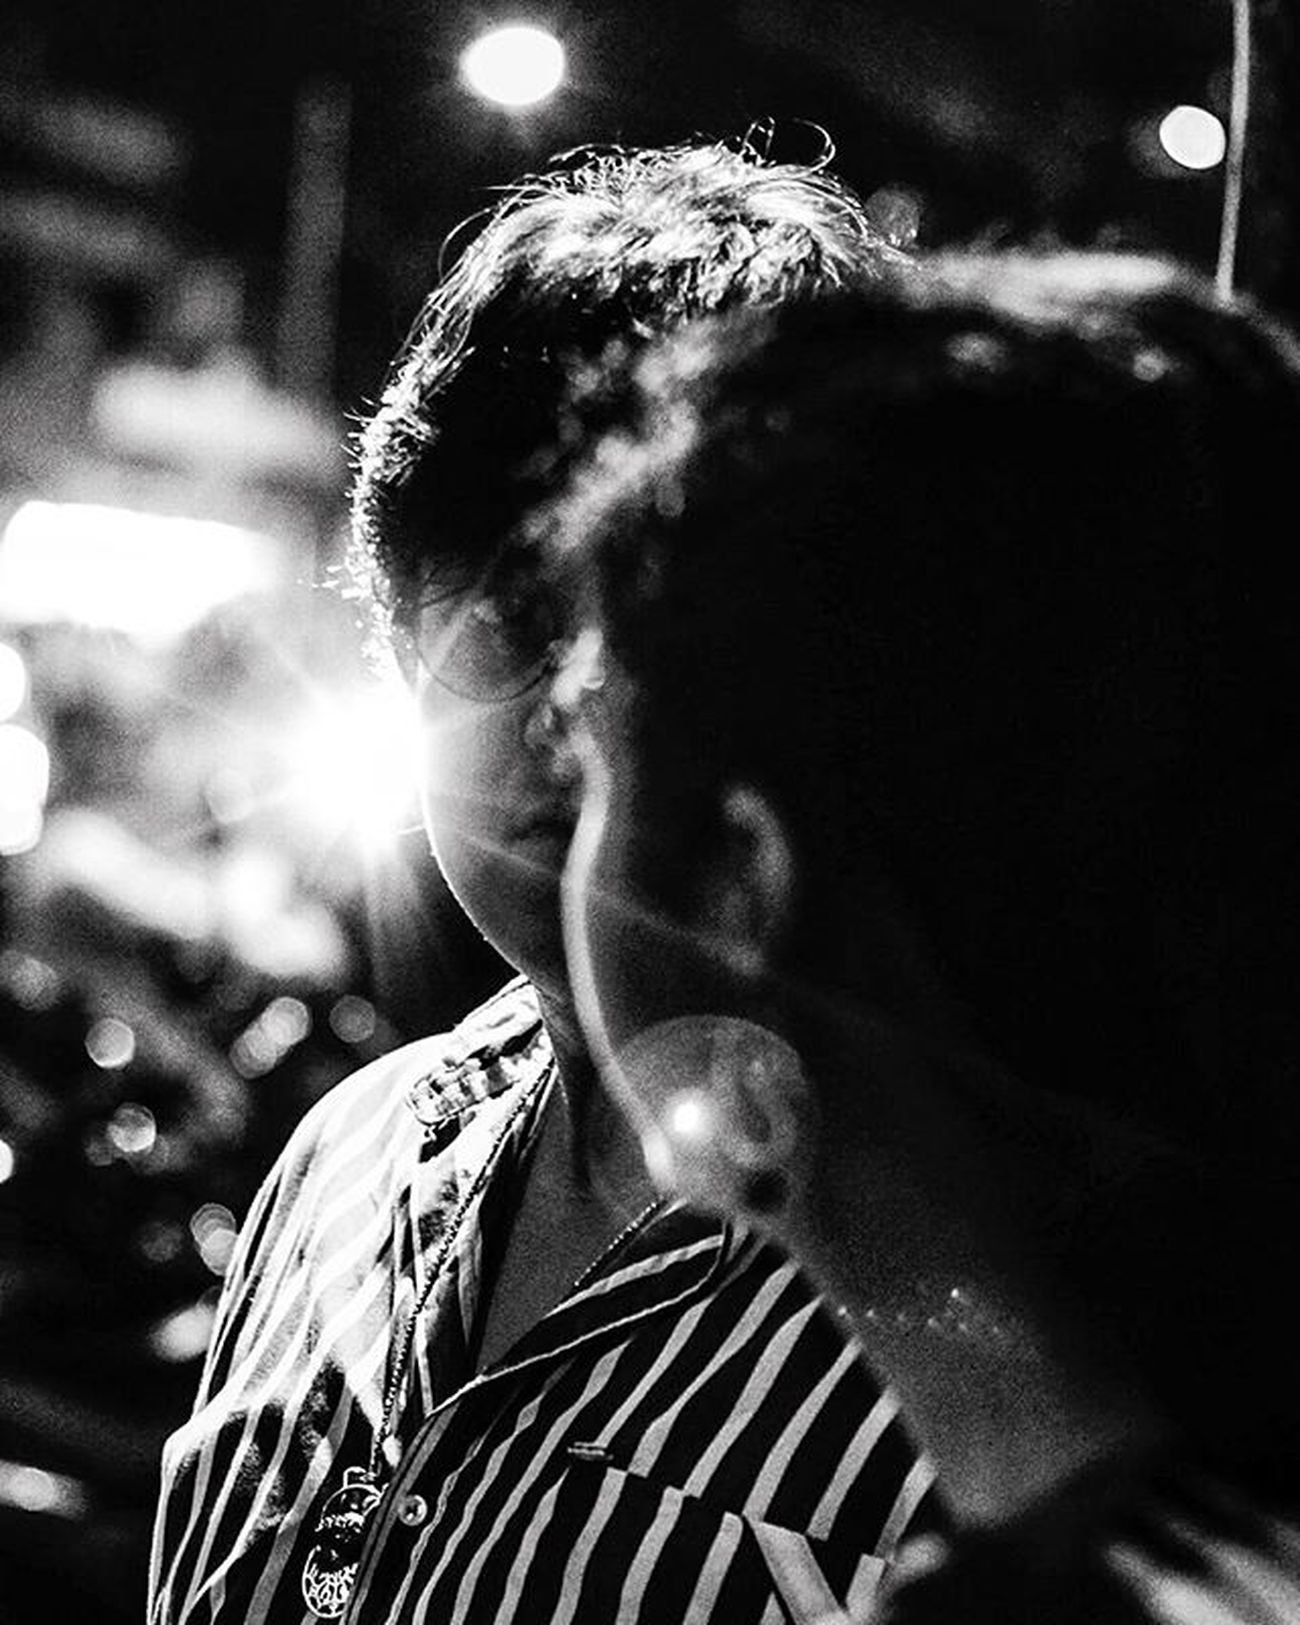 Monochrome Portrait Candid Light Flares Street Photography Lovers_at_sight Facetoface Throwback Ramzan 2014 Night Mumbai